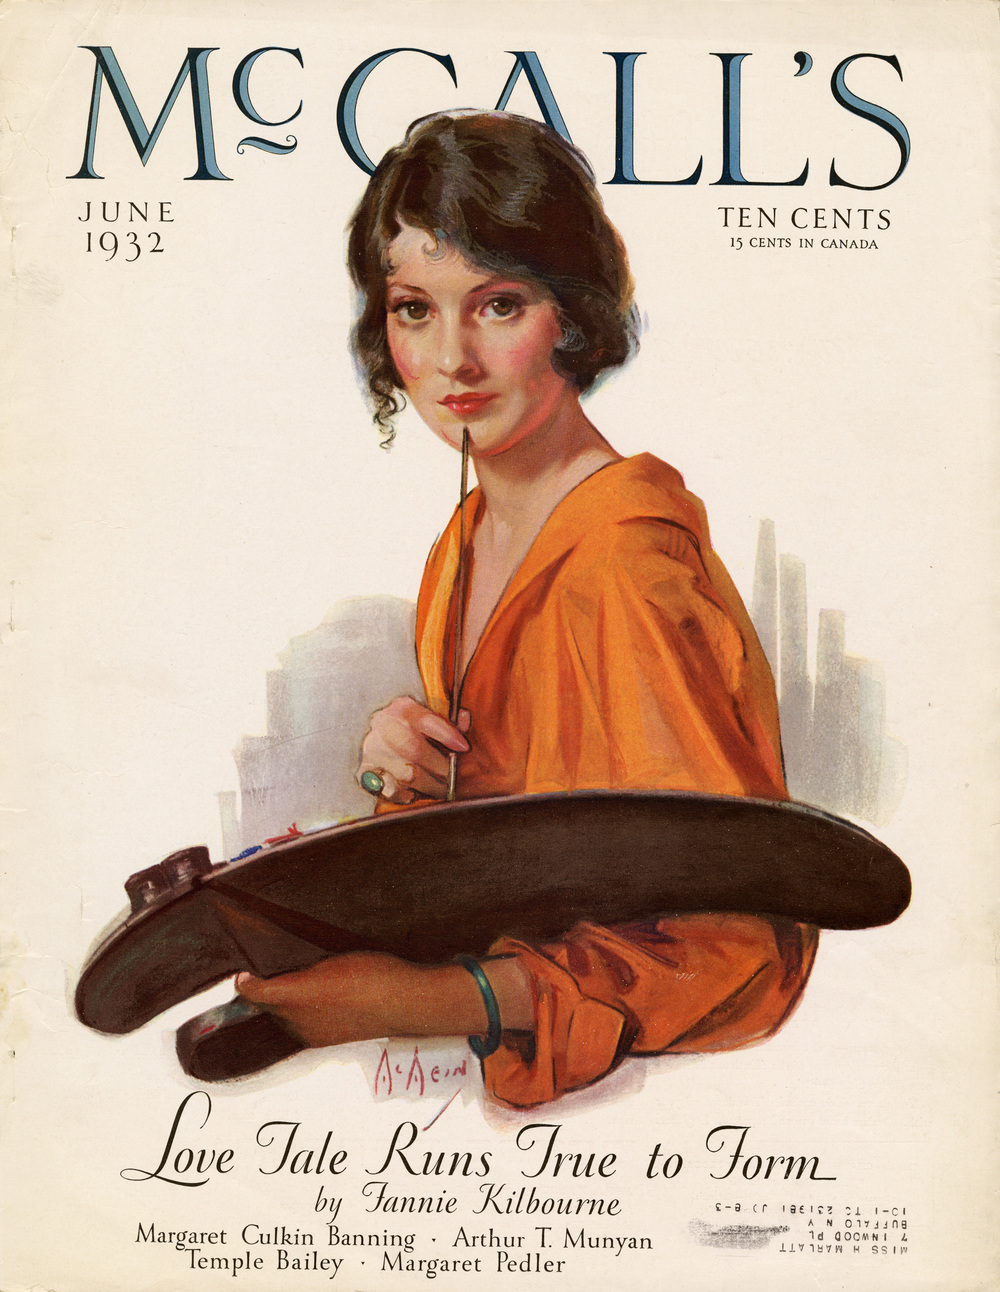 Neysa McMein, Cover Illustration for McCall's. June 1932.